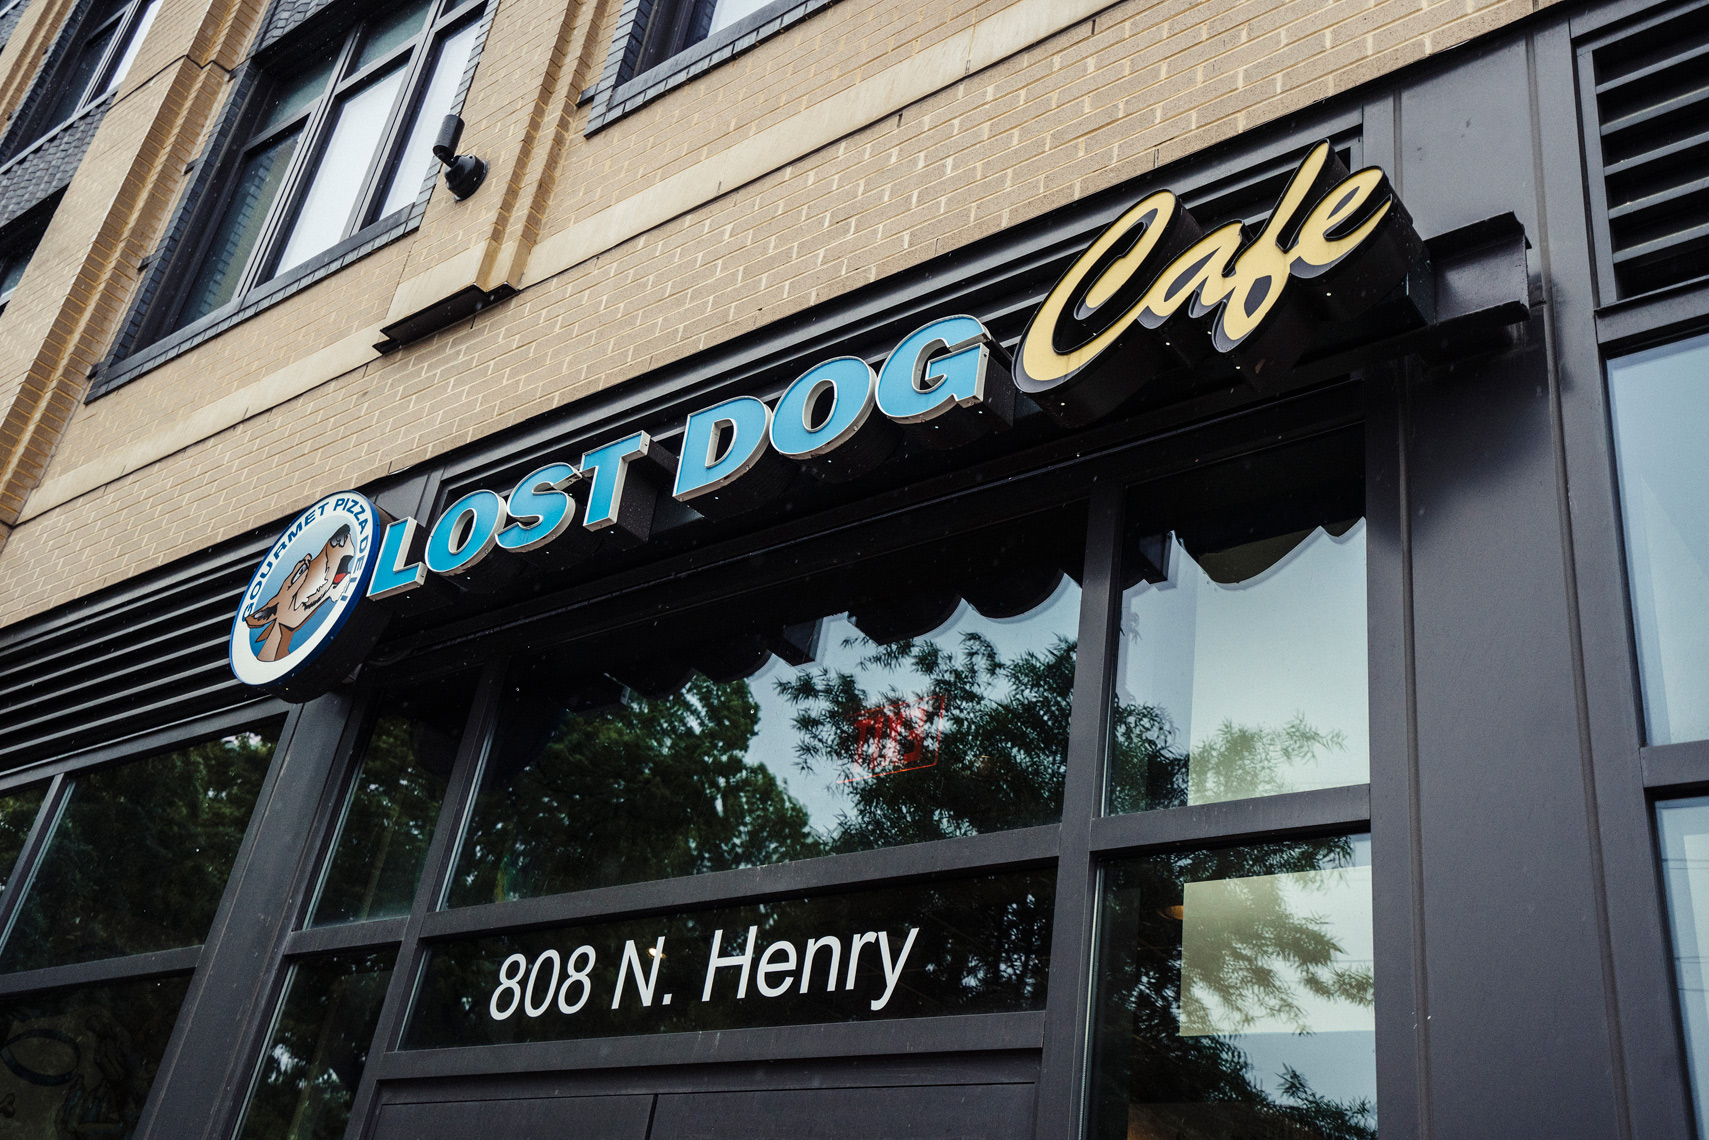 020_PhotoFolio_Web_TheLostDogCafe_DSC4791